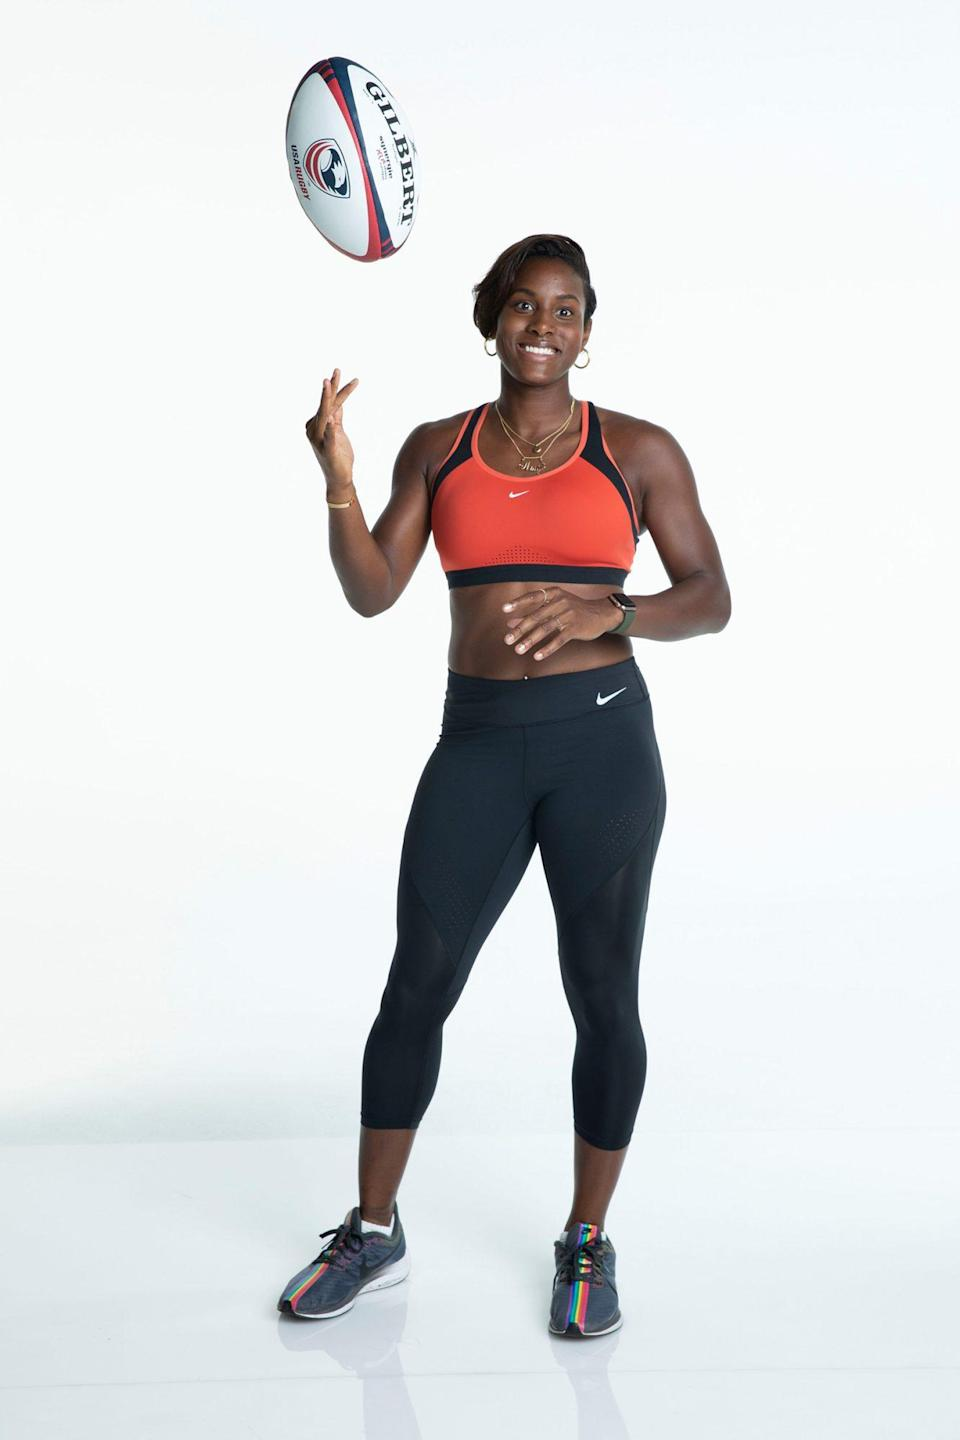 "<p>The 26-year-old rugby player didn't even begin playing the sport until in college at the University of North Carolina in 2012. Though interested before, she spent her high school years focused on track and field. A supporter of the <a href=""https://www.girlsrugbyinc.com/"" rel=""nofollow noopener"" target=""_blank"" data-ylk=""slk:Girls Rugby"" class=""link rapid-noclick-resp"">Girls Rugby</a> organization, Tapper hopes to be a role model for both young women and boys interested in the sport.</p>"